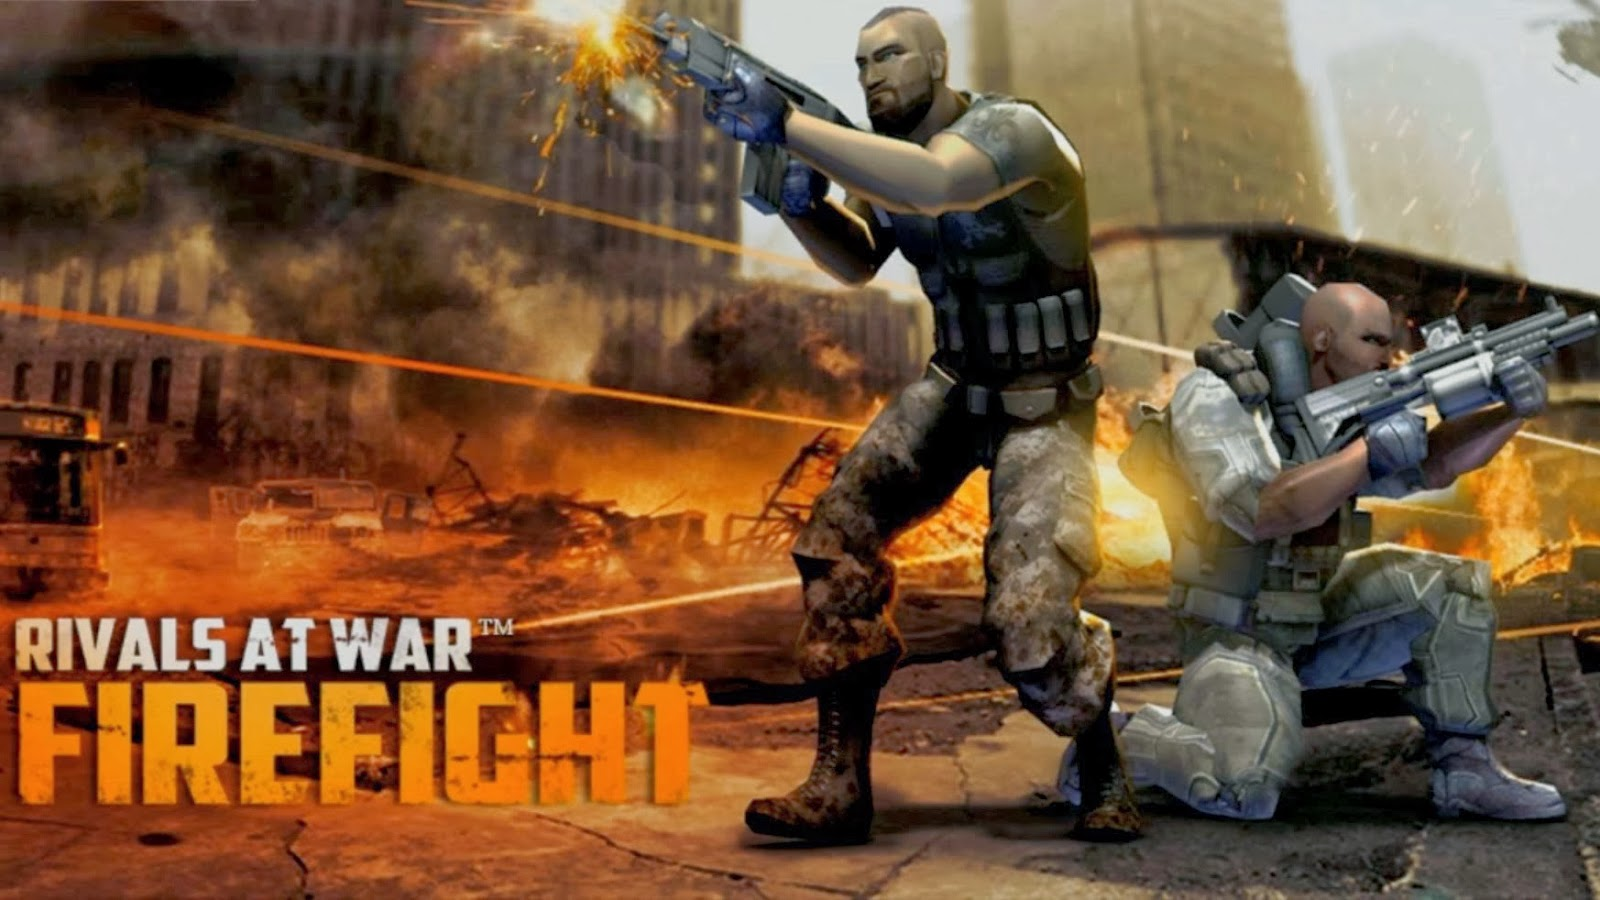 Rivals at War: Firefight v1.3.2 Apk Full